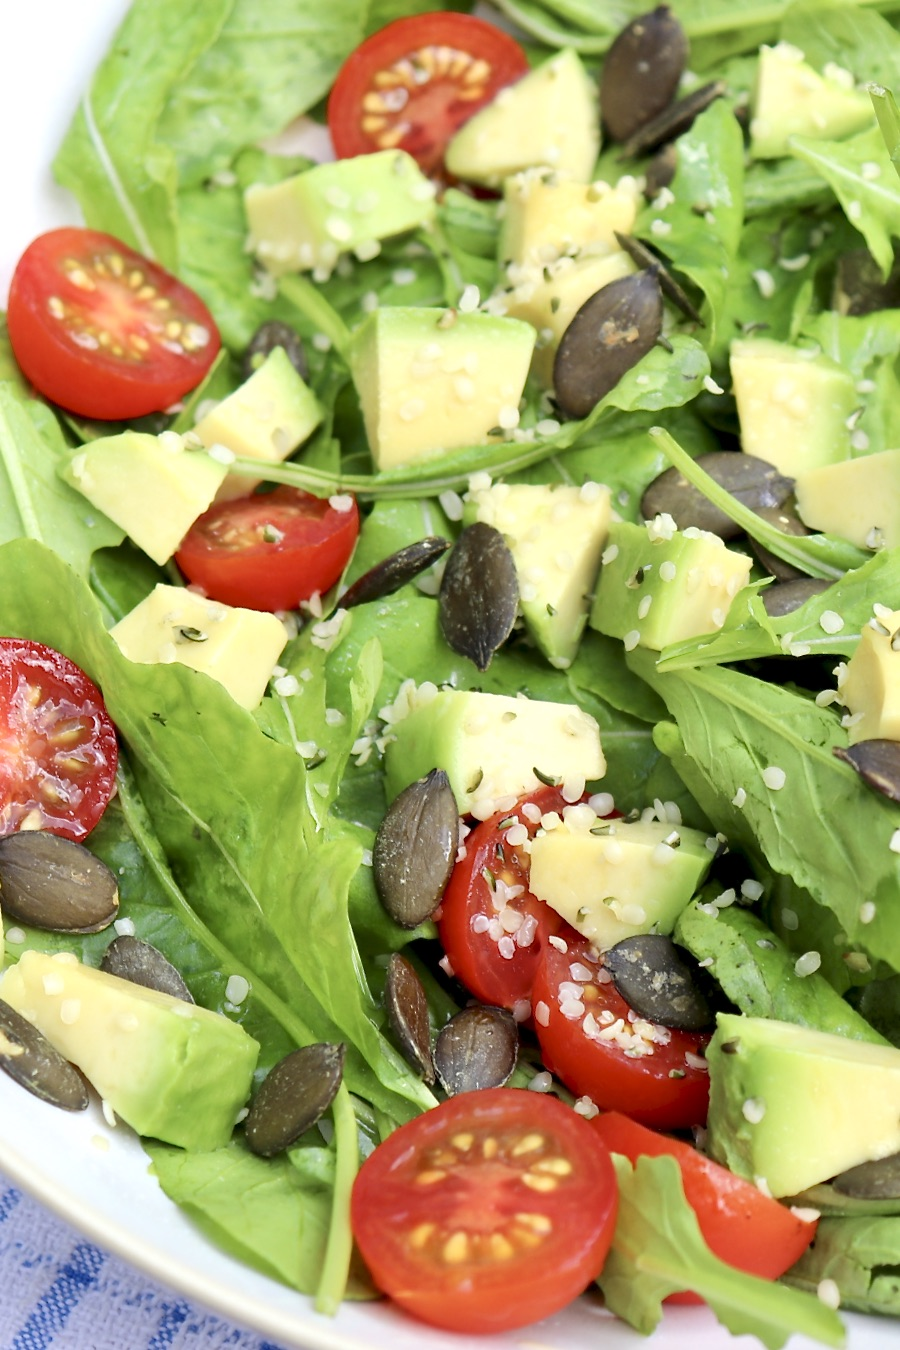 Crunchy, creamy, salt-and-peppery ingredients come together in the simplest of salads that may become a new favorite.